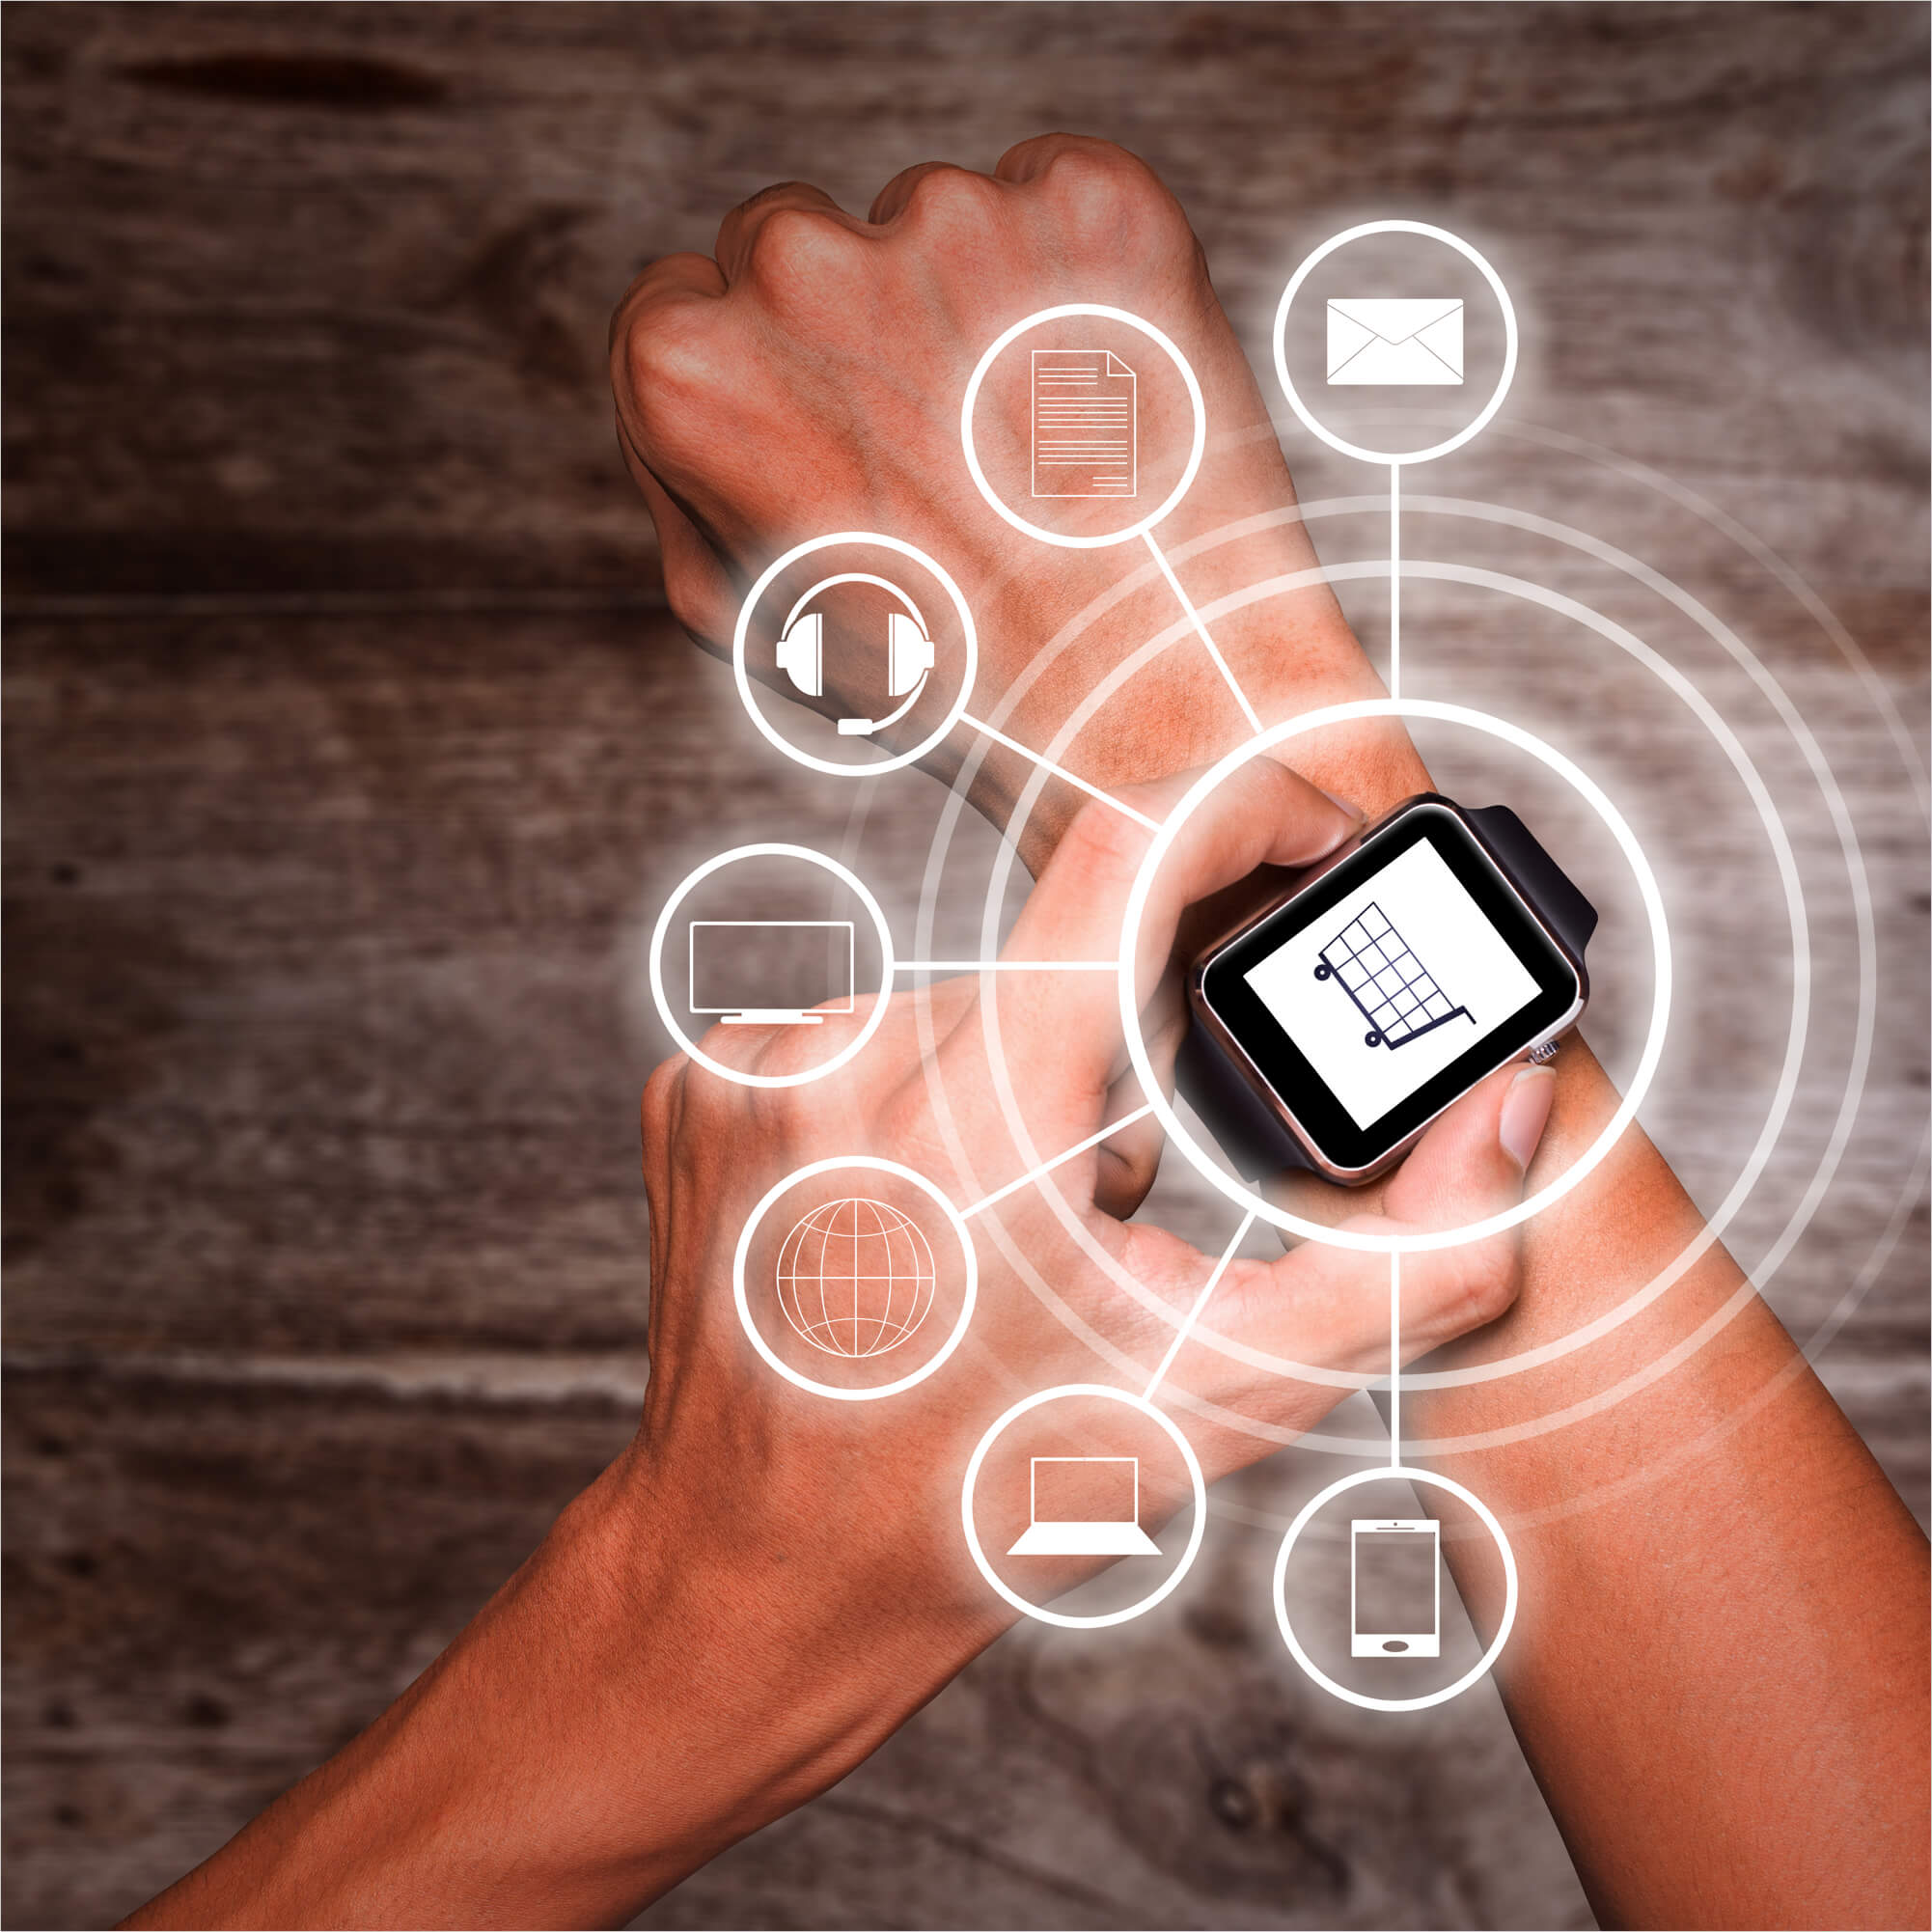 Smart watch image for Enterprise Solutions